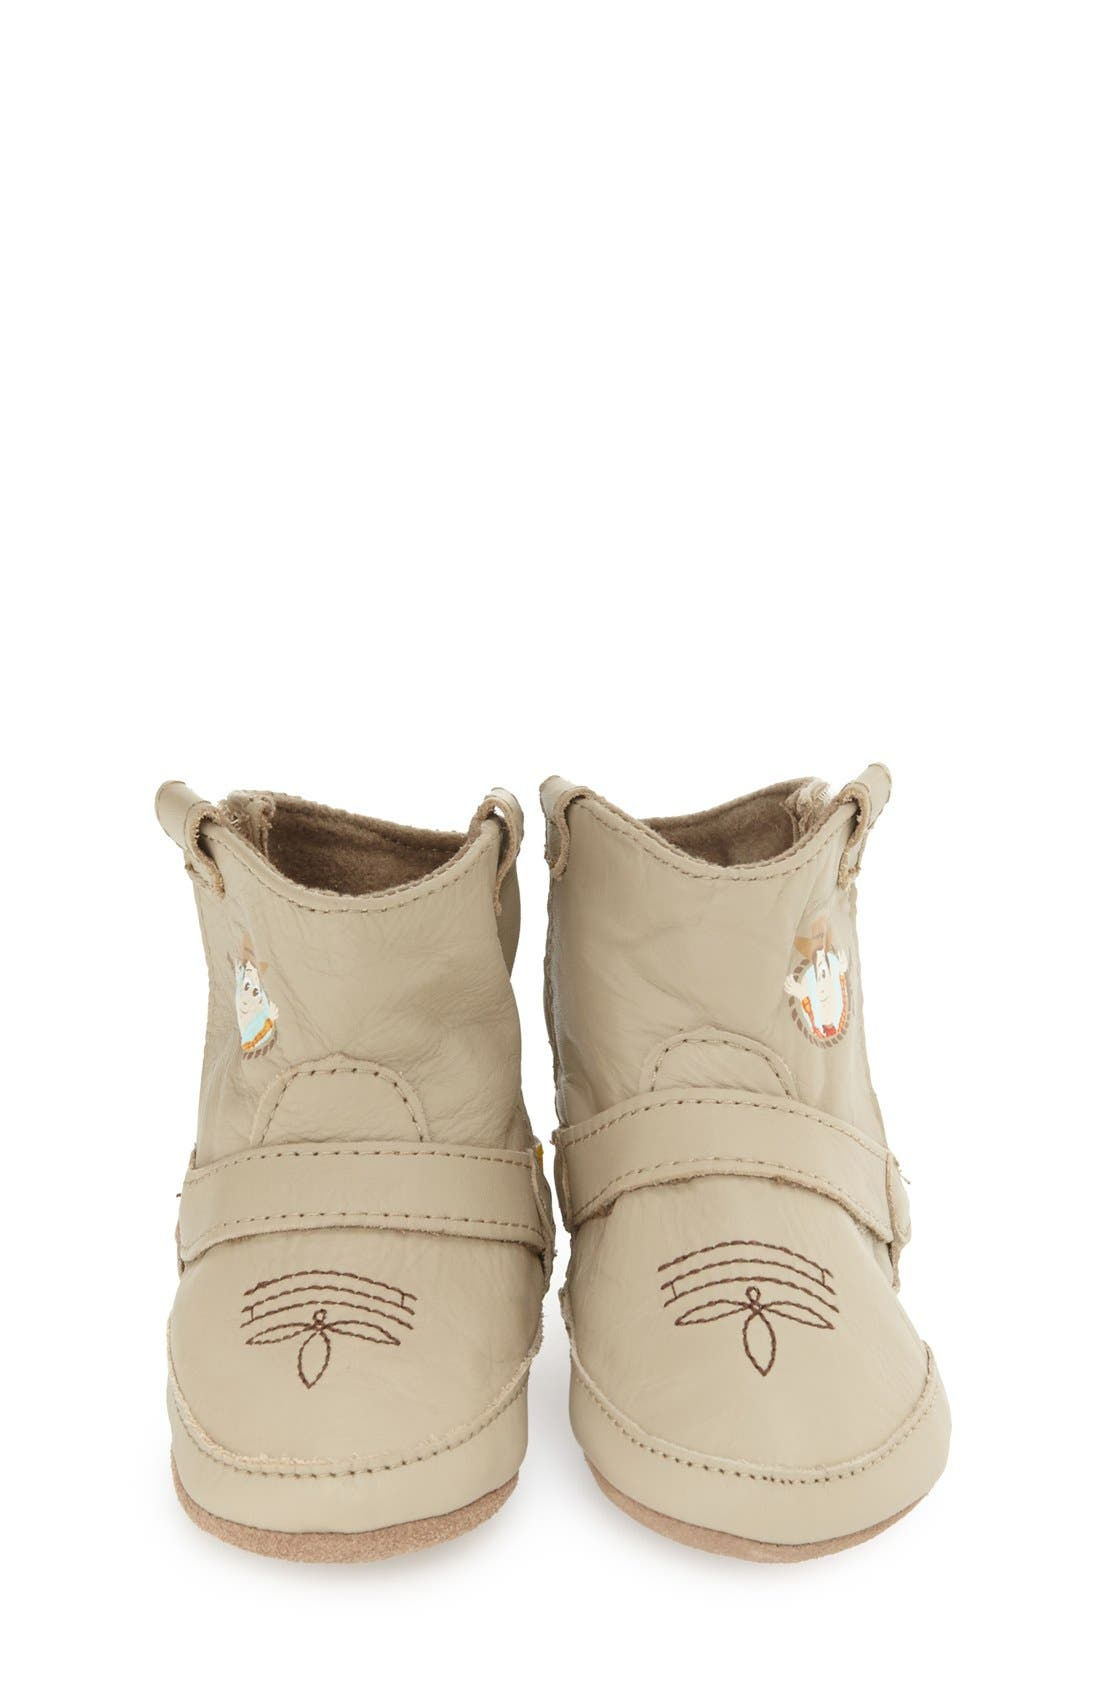 'Disney<sup>®</sup> Woody<sup>®</sup> Bootie' Crib Shoe,                             Alternate thumbnail 3, color,                             Taupe